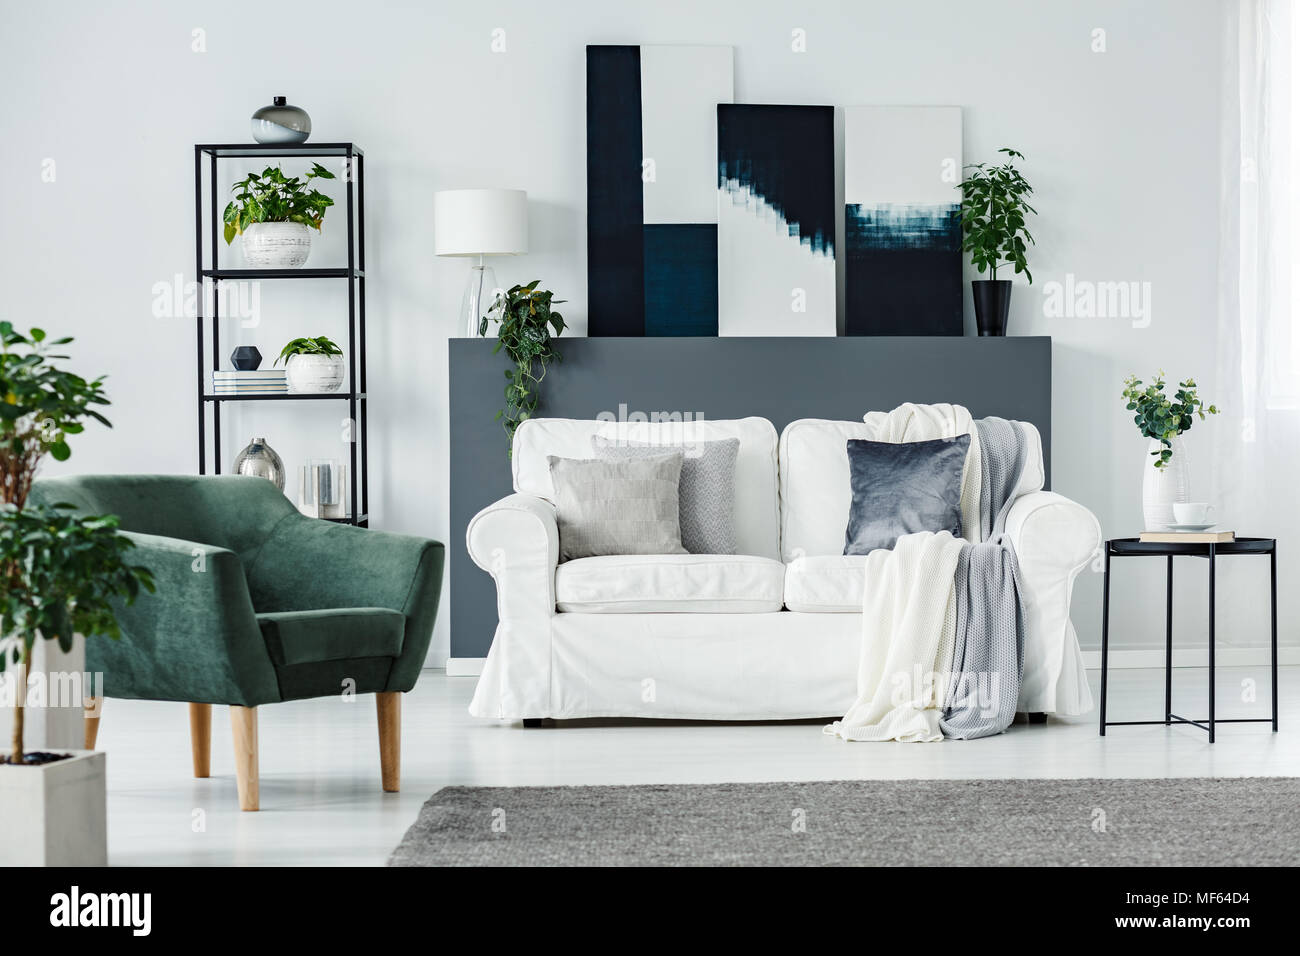 Simple Scandinavian Apartment Interior With White Sofa, Green Armchair,  Modern Paintings And Metal Furniture